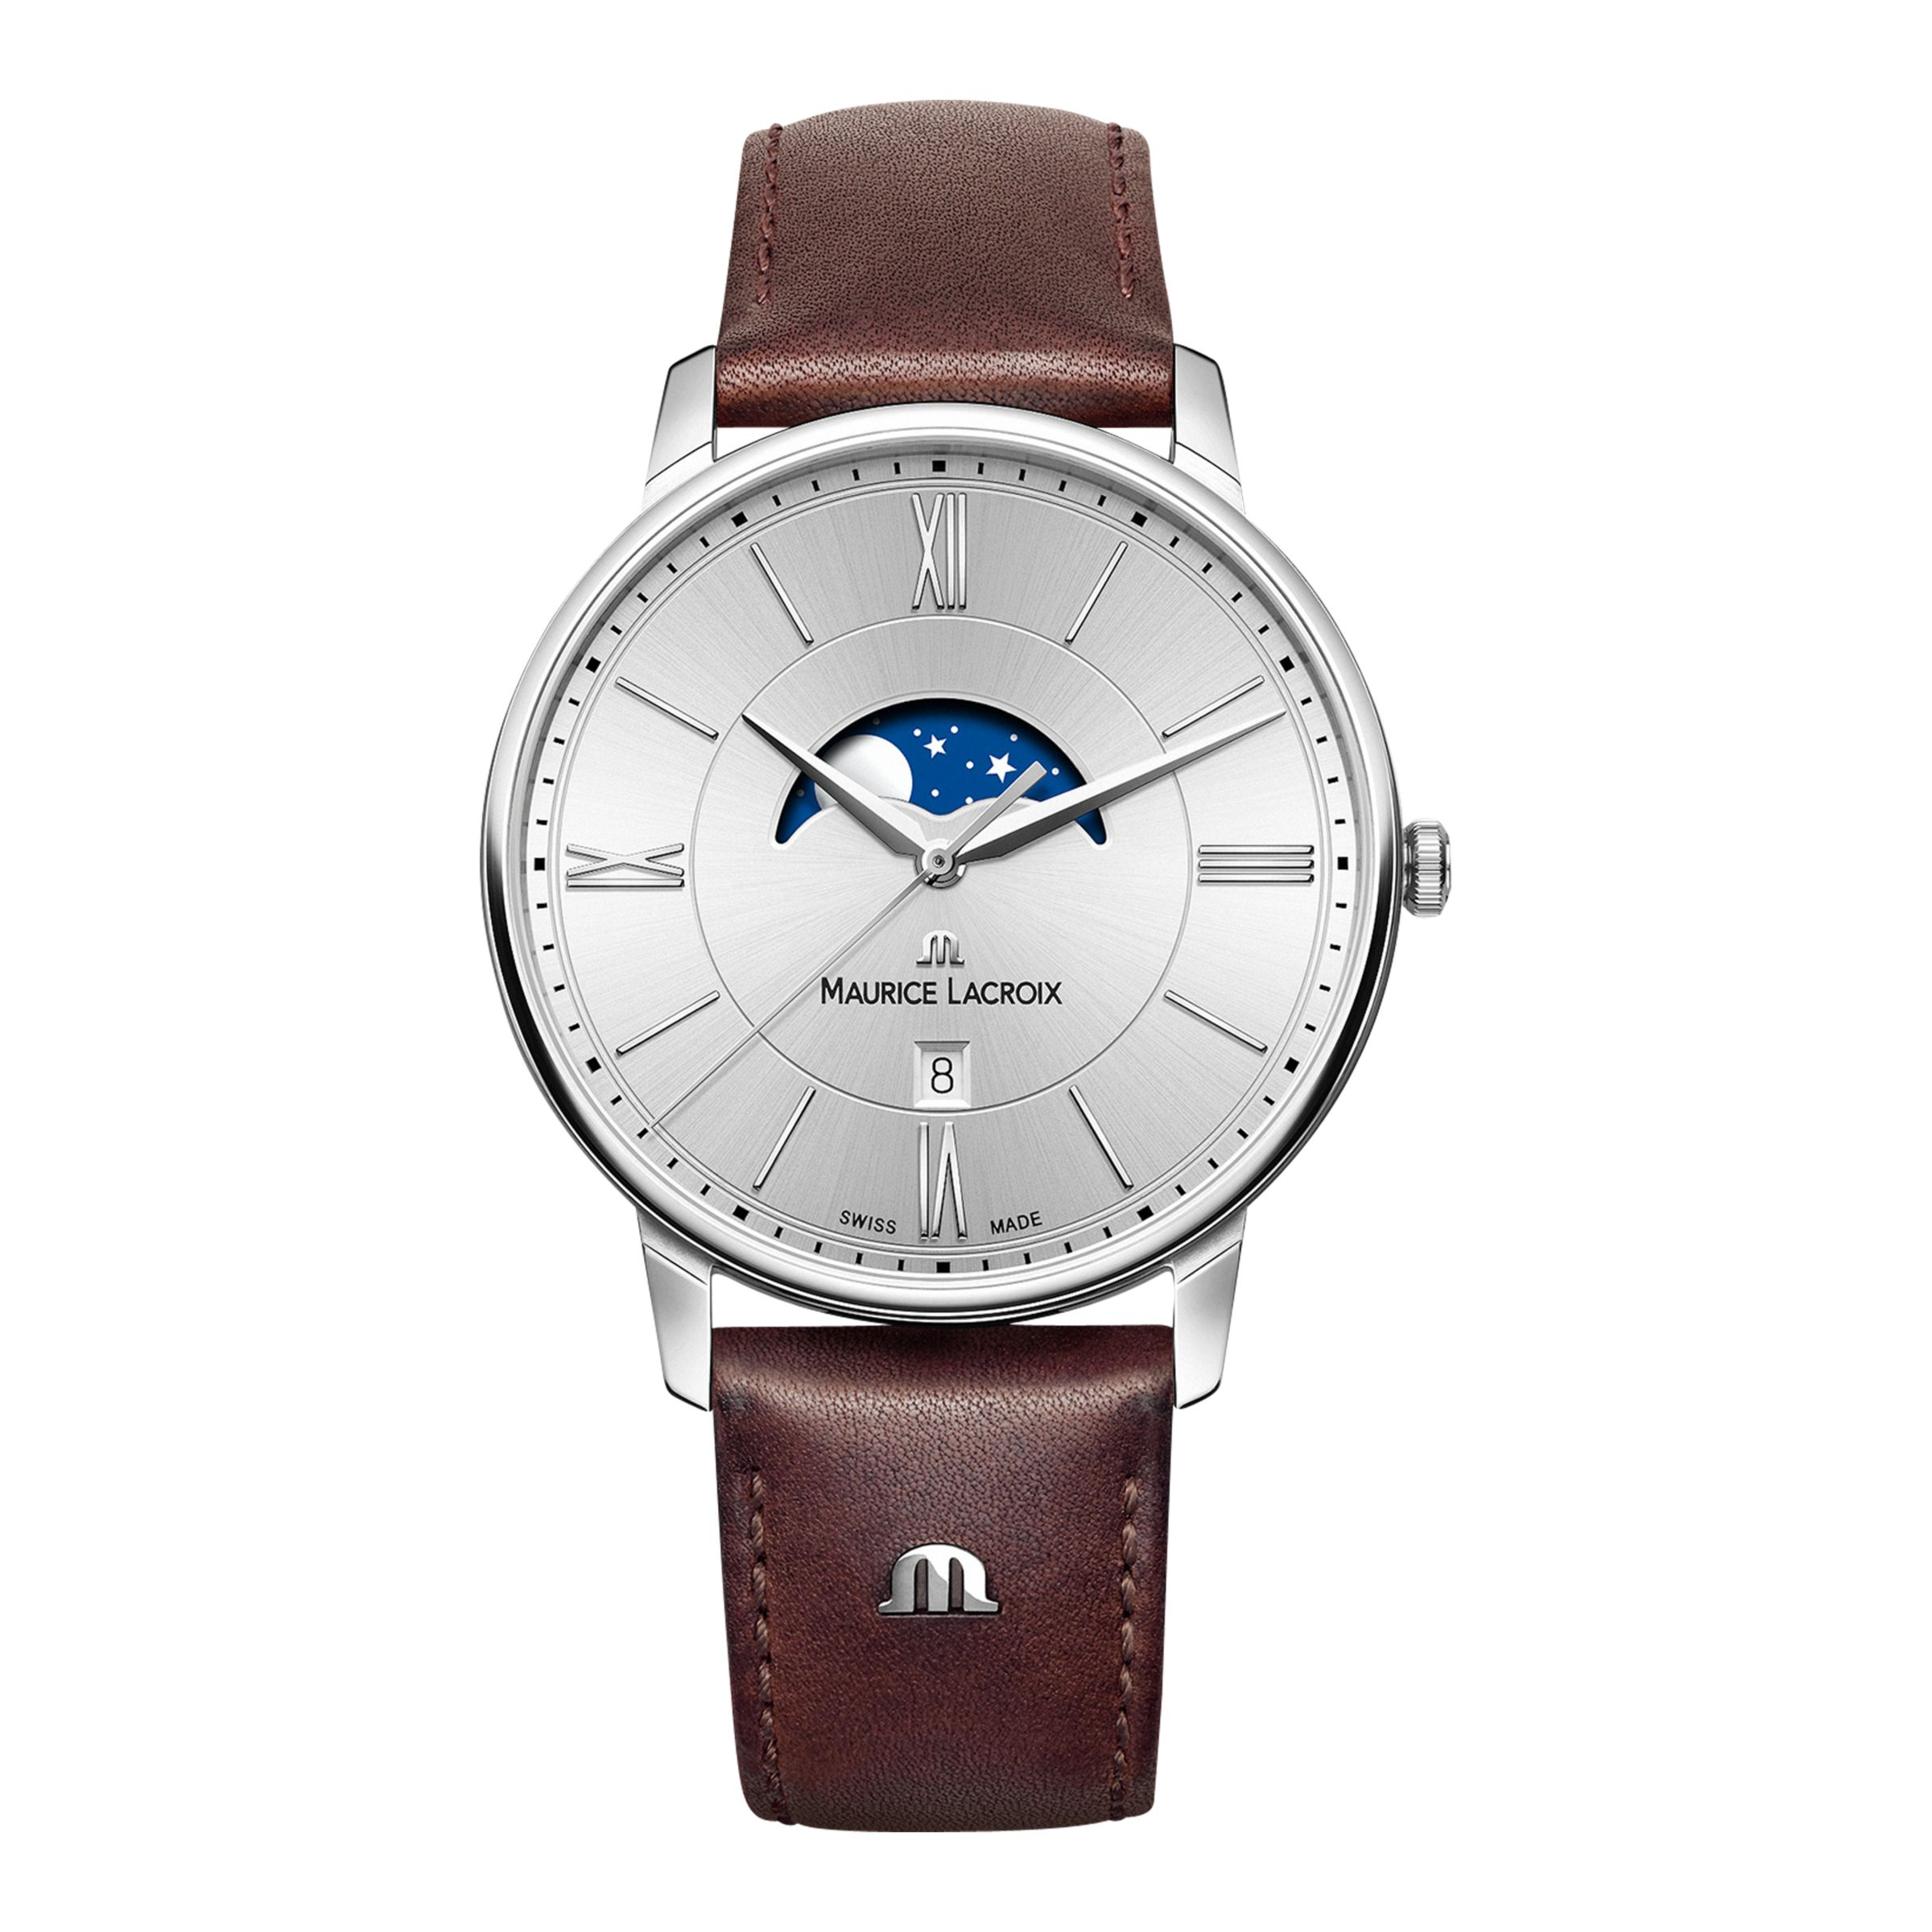 Maurice Lacroix Maurice Lacroix EL1108-SS001-110-1 Men's Eliros Moon Phase Date Leather Strap Watch, Brown/Silver